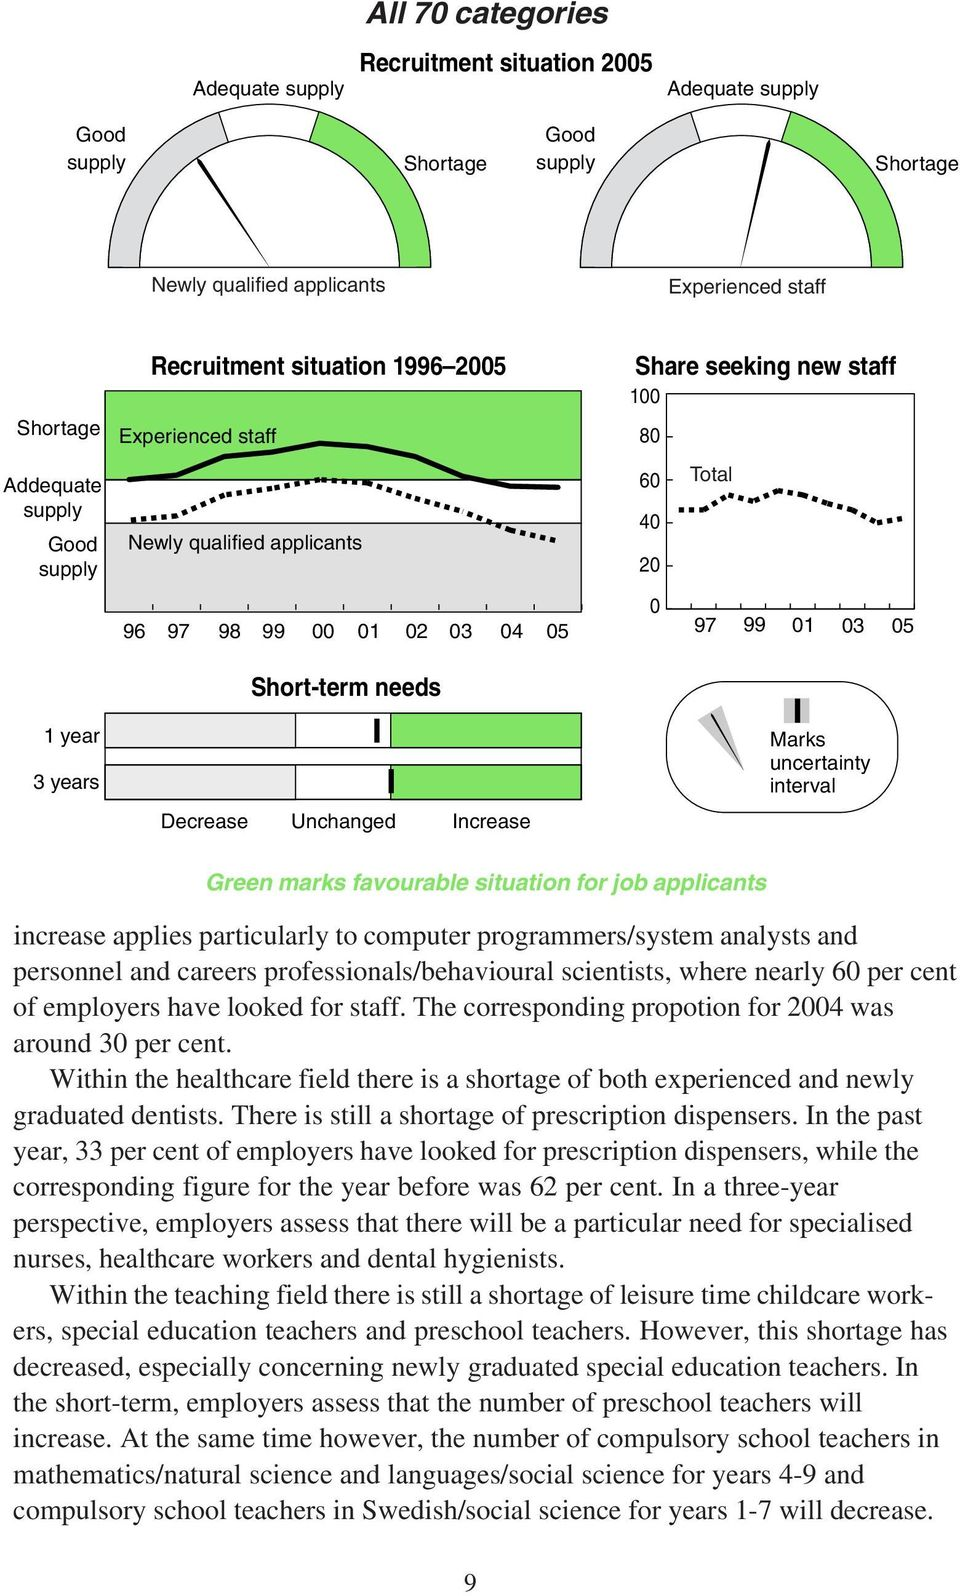 Increase Marks uncertainty interval Green marks favourable situation for job applicants increase applies particularly to computer programmers/system analysts and personnel and careers